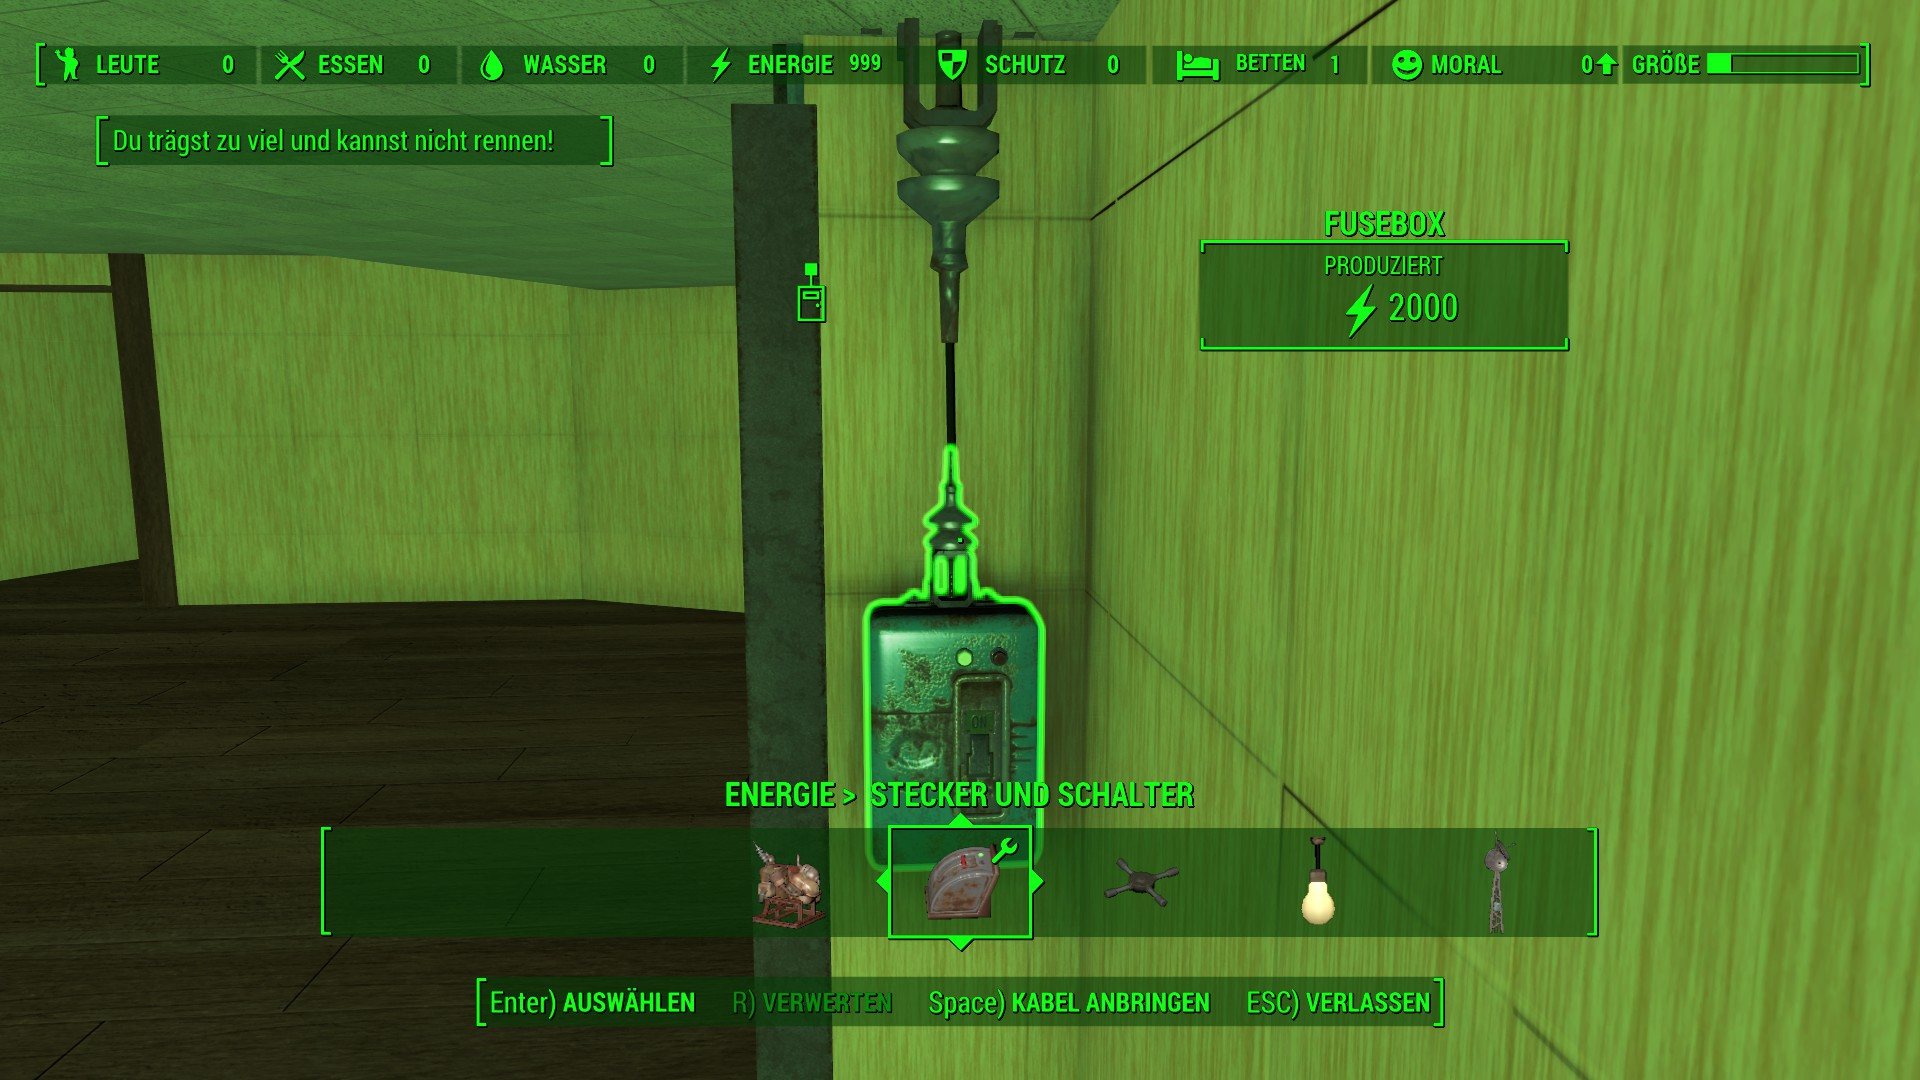 20523 8 1481319582 fallout 4 fuse box mod fallout wiring diagrams collection fallout 4 fuse box mod at crackthecode.co